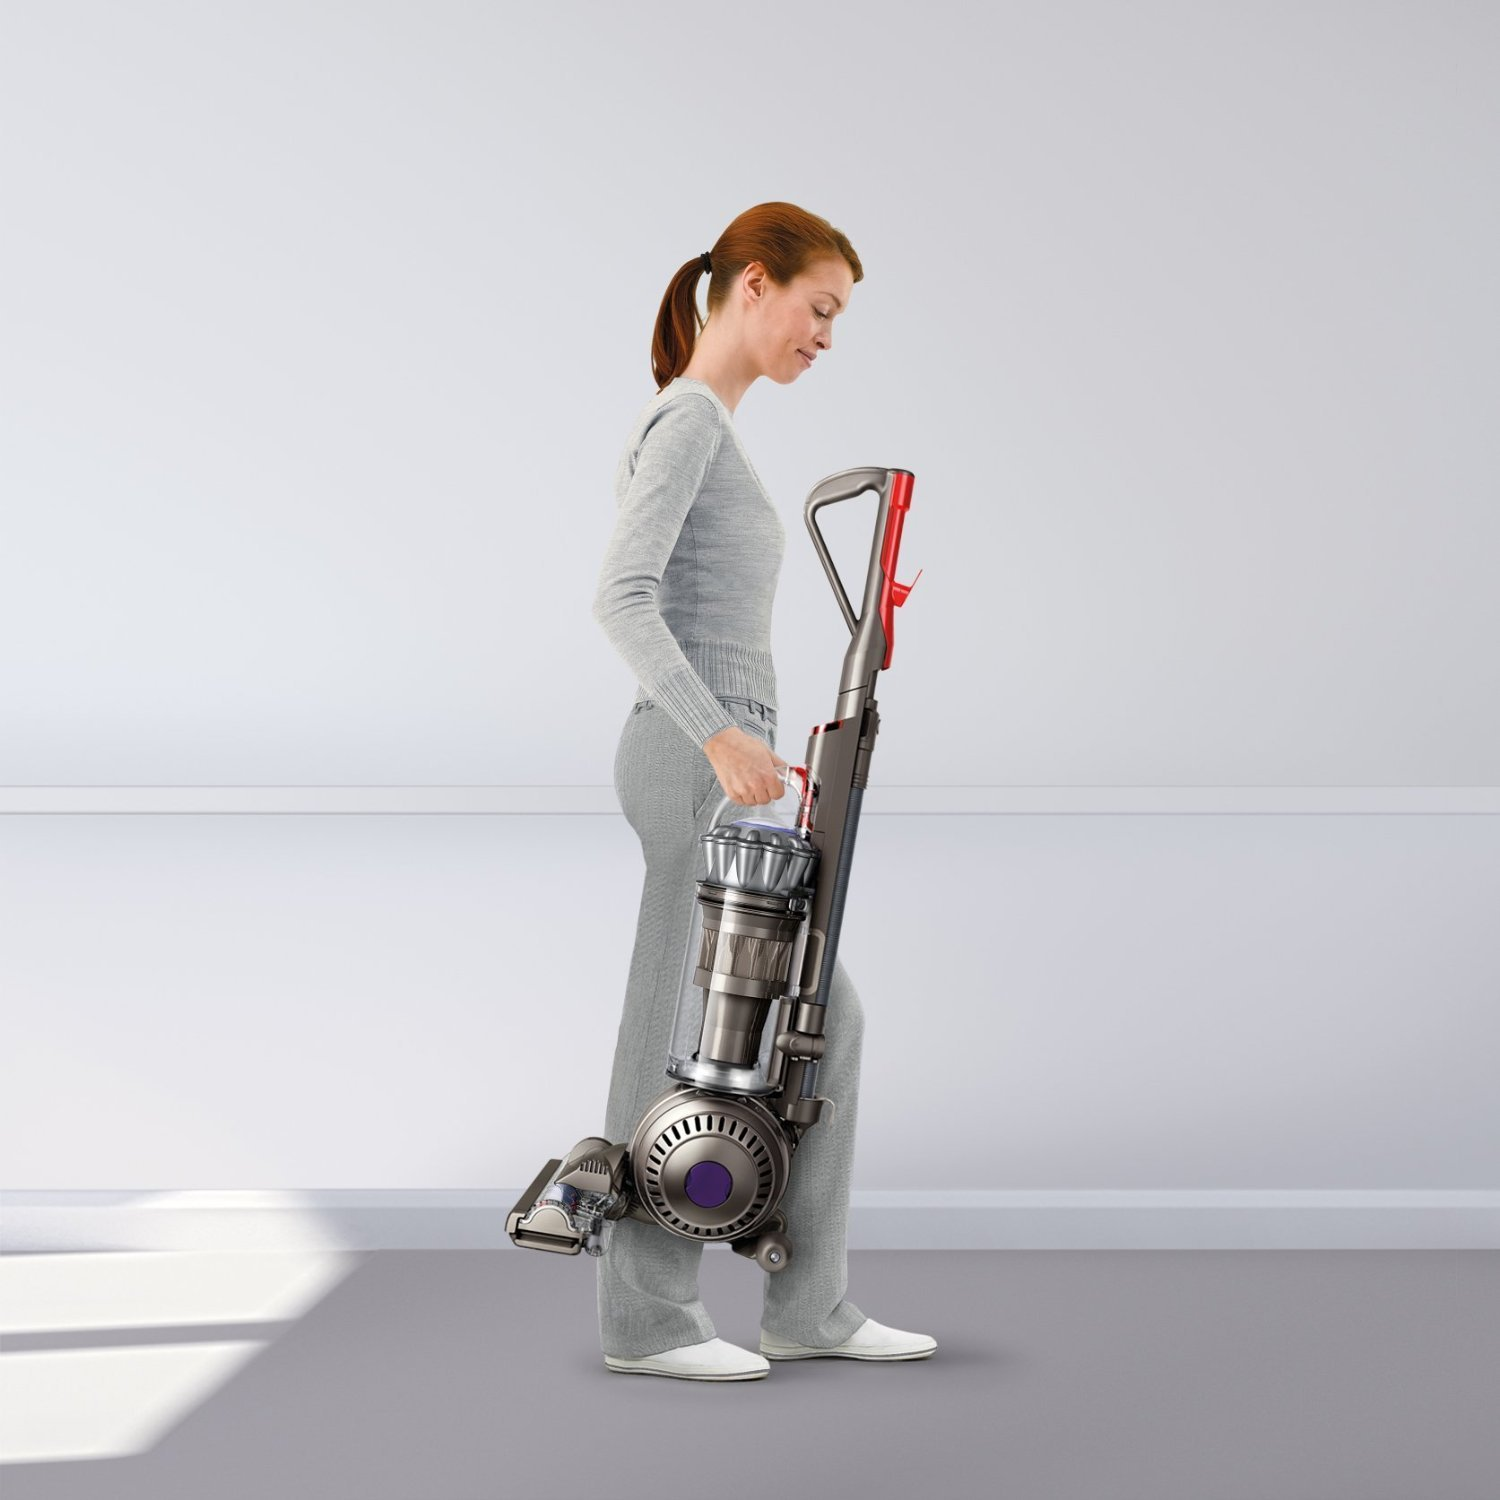 dyson dc41 multi floor upright bagless vacuum: silver, purple, or